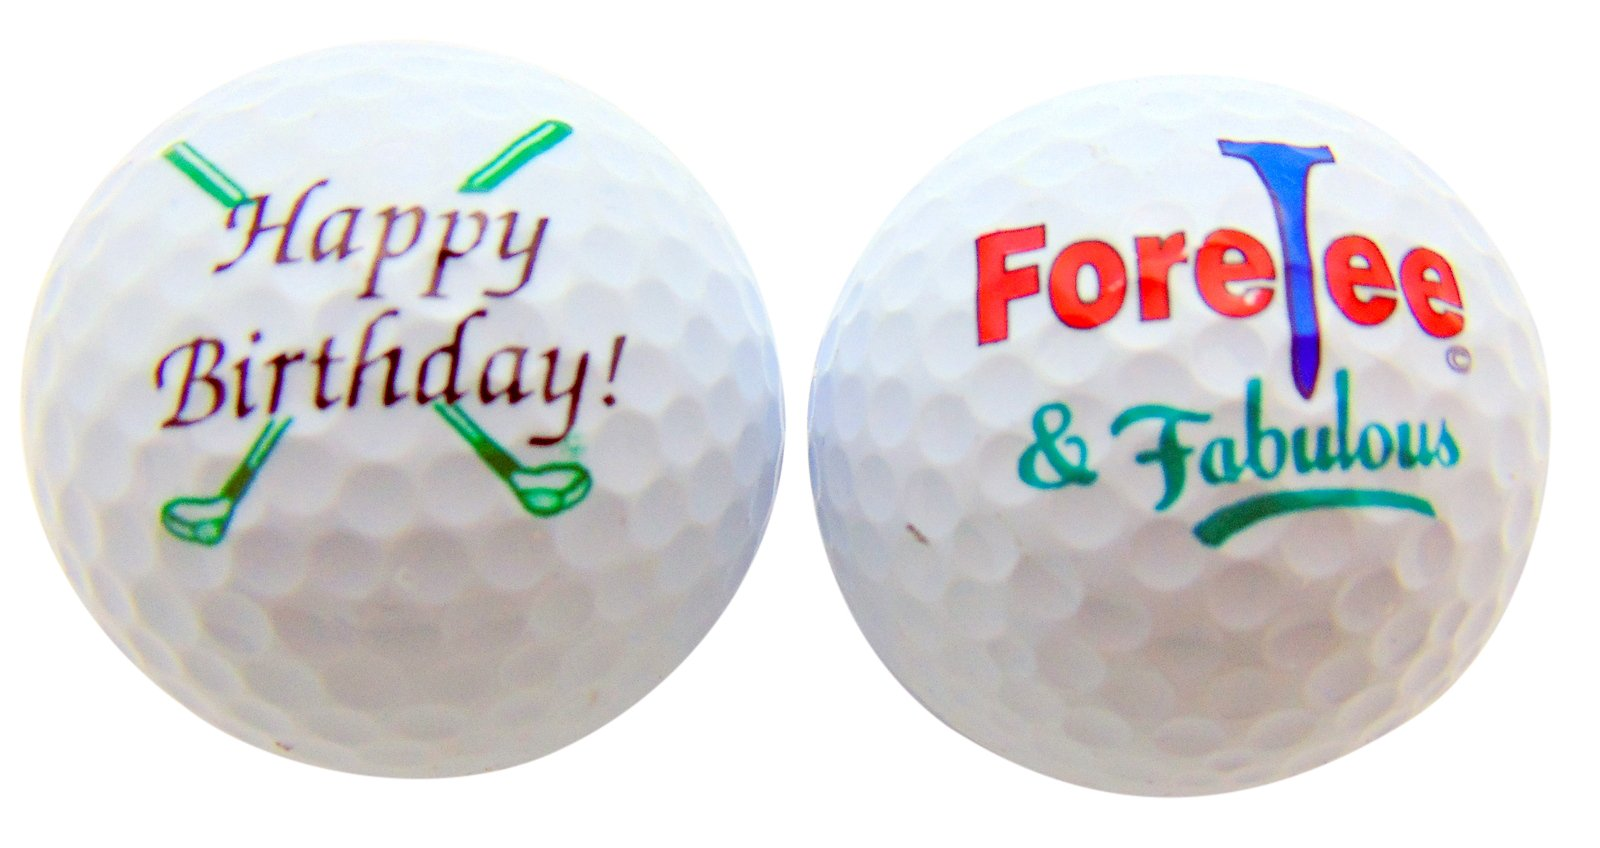 Happy 40th Birthday ForeTee & Fabulous Set of 2 Golf Ball Golfer Gift Pack